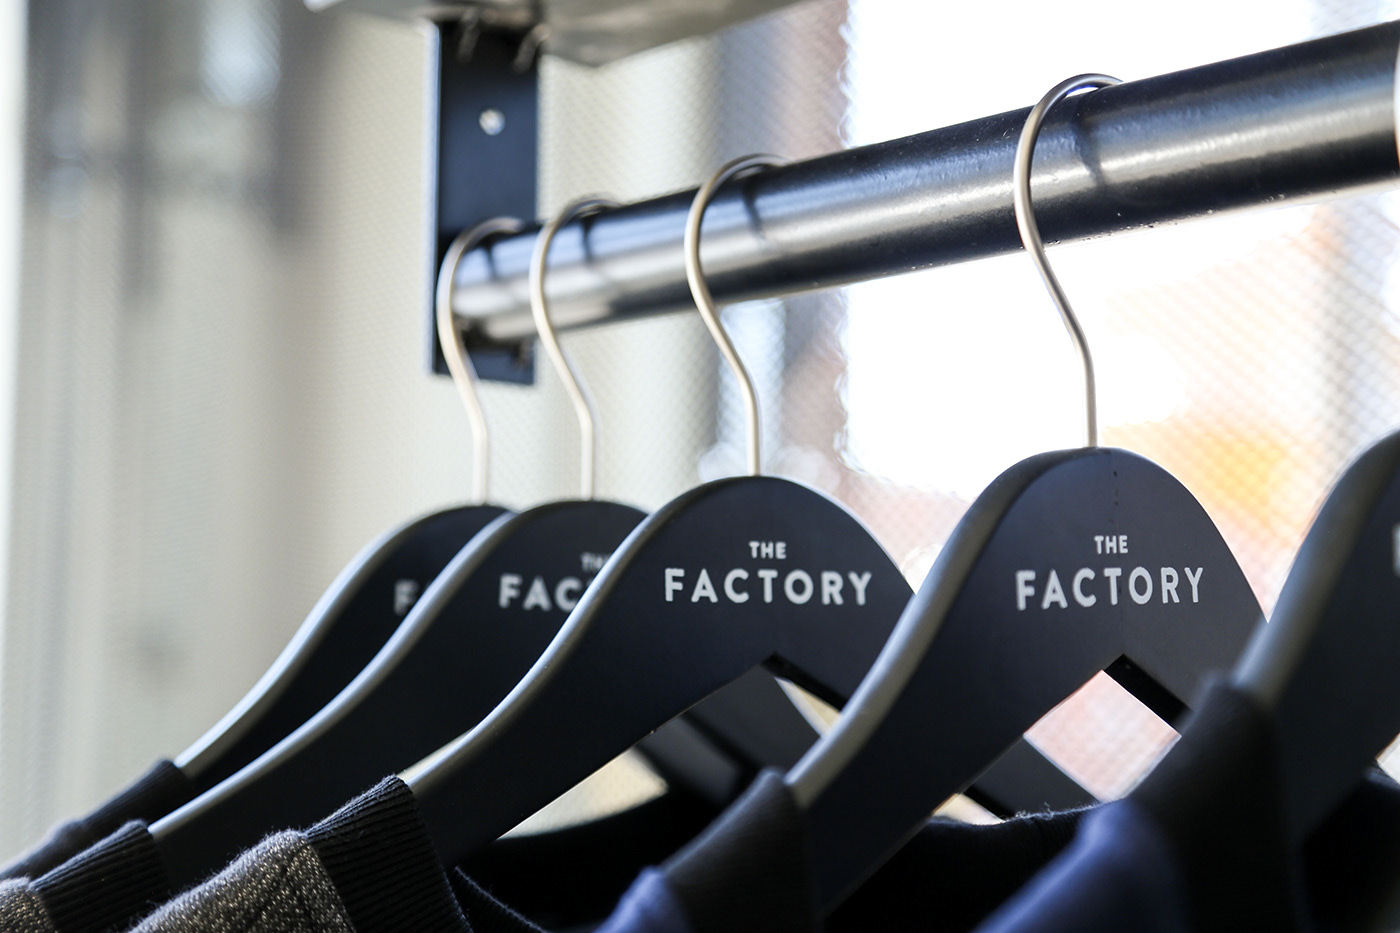 Hangers with an embossed The Factory logo